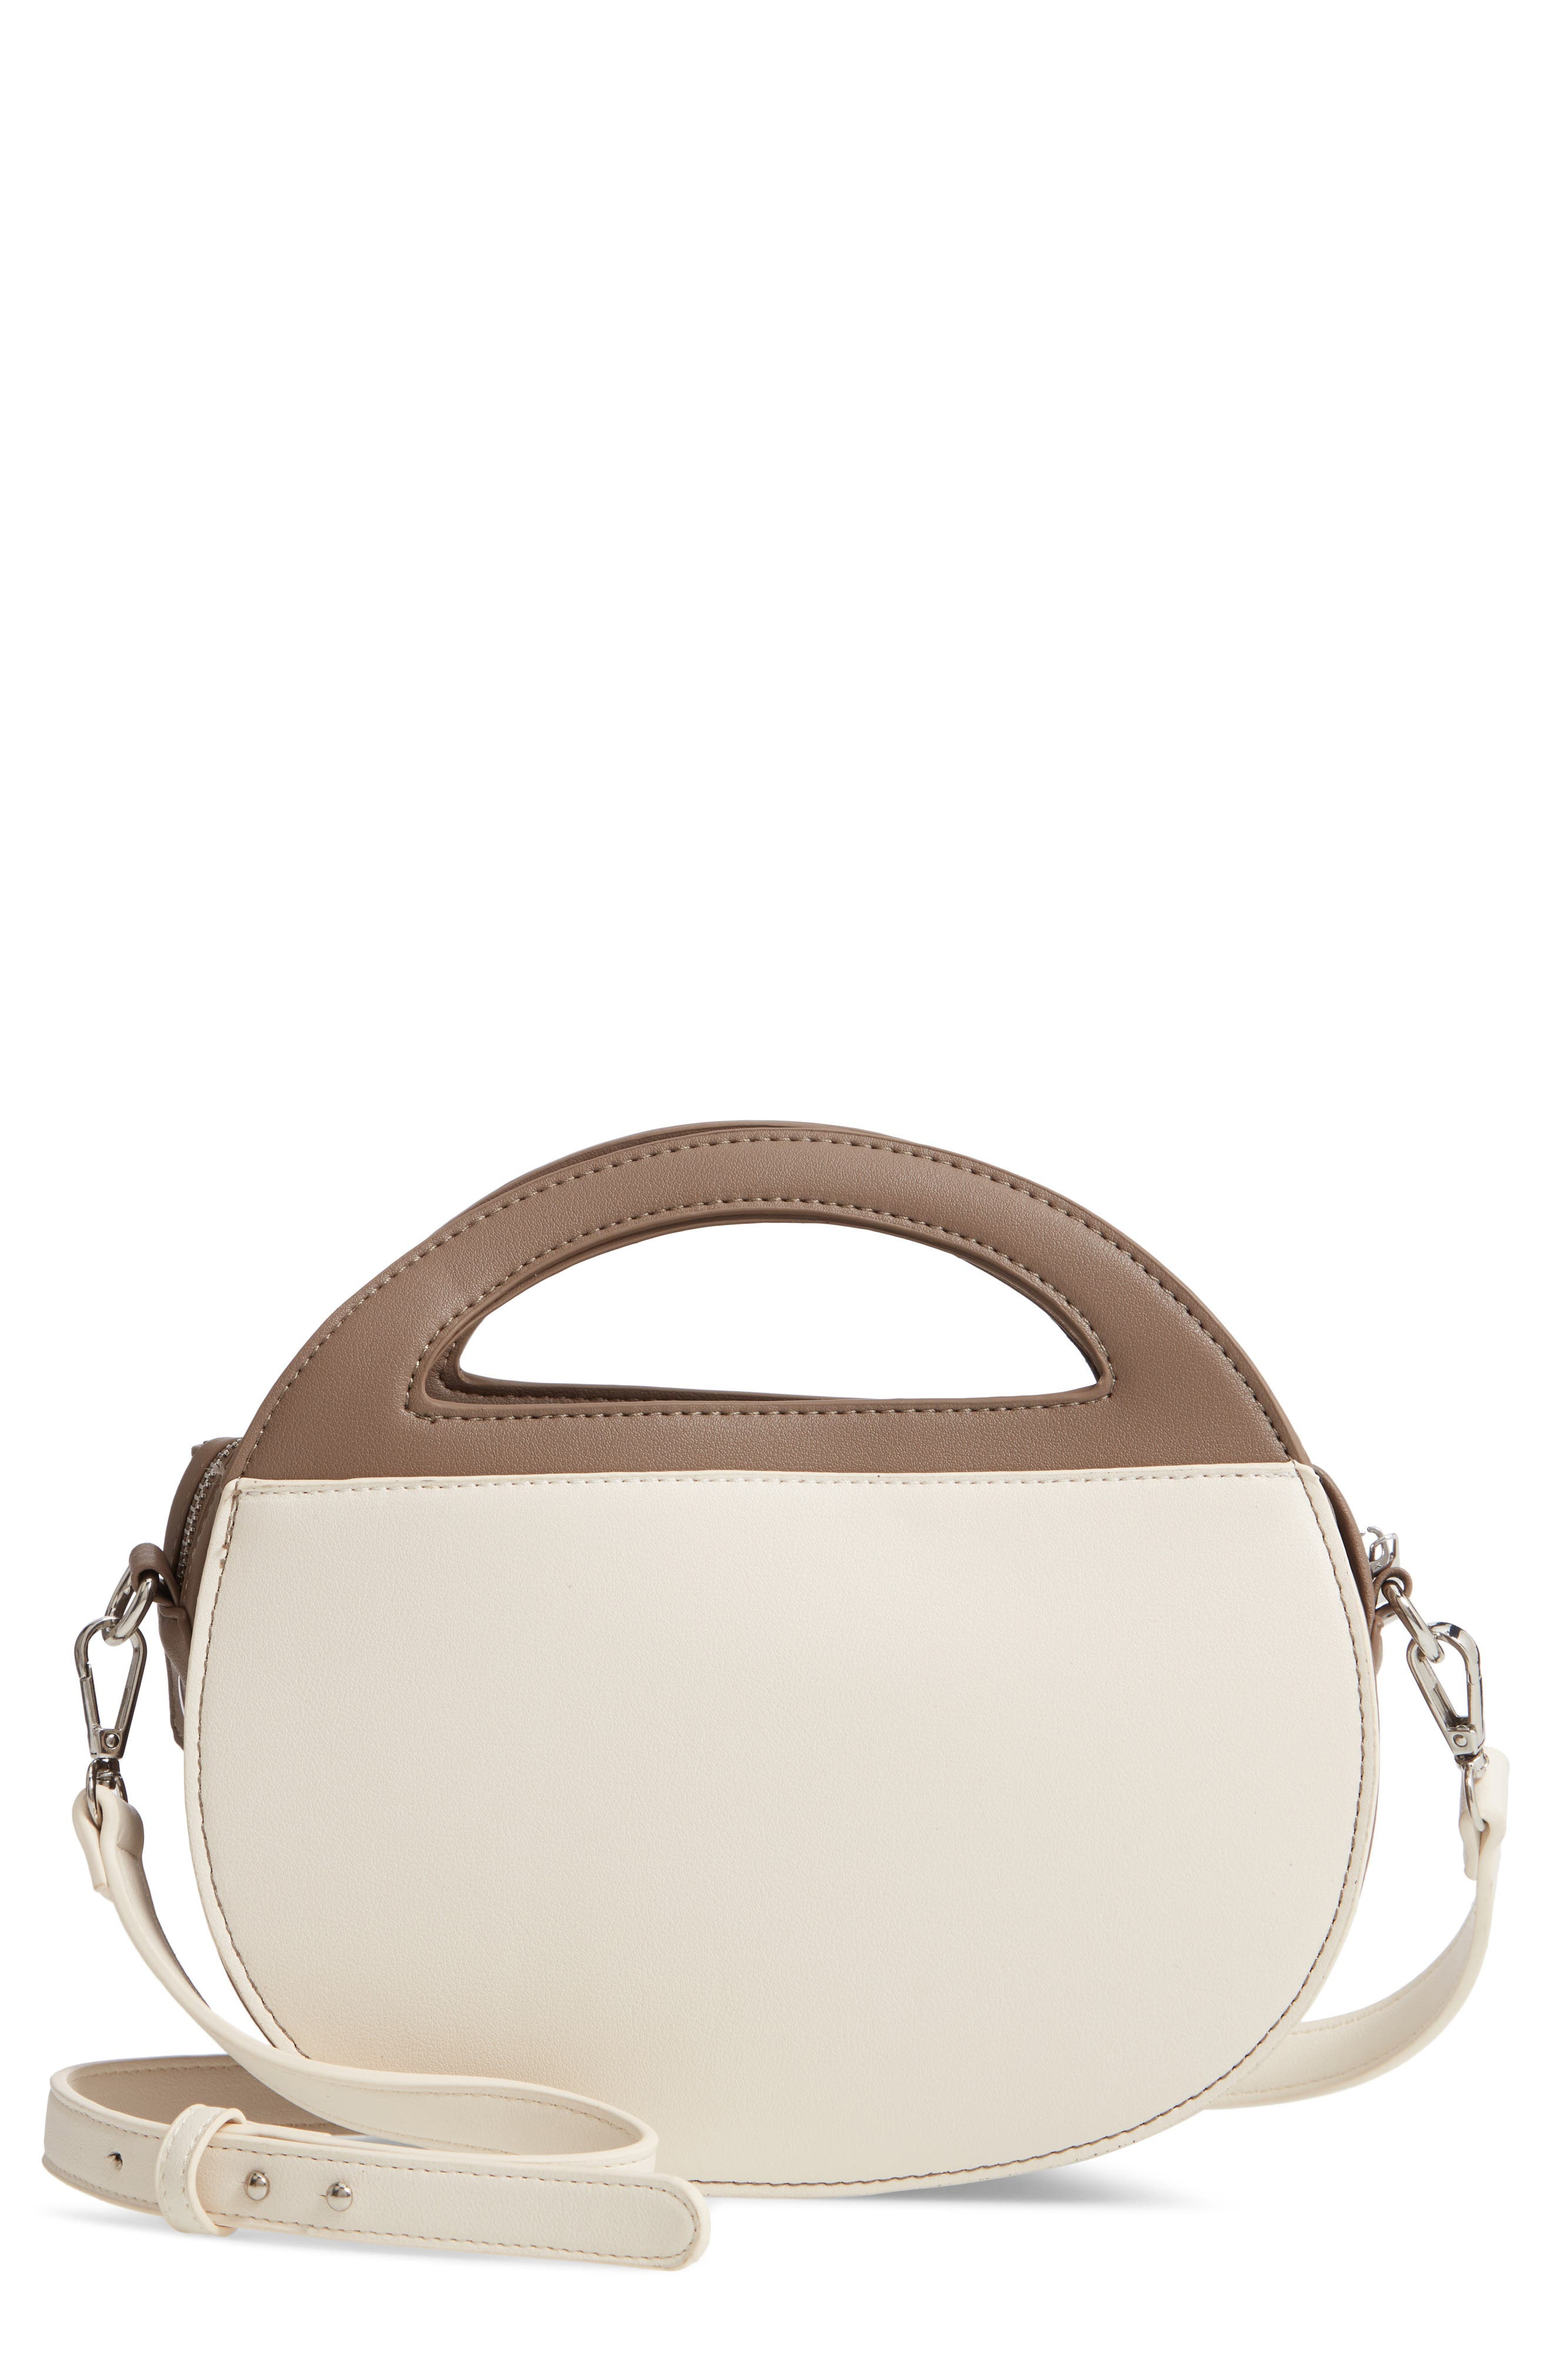 Two-Tone Faux Leather Oval Crossbody Bag,                             Main thumbnail 1, color,                             TAUPE/ COGNAC